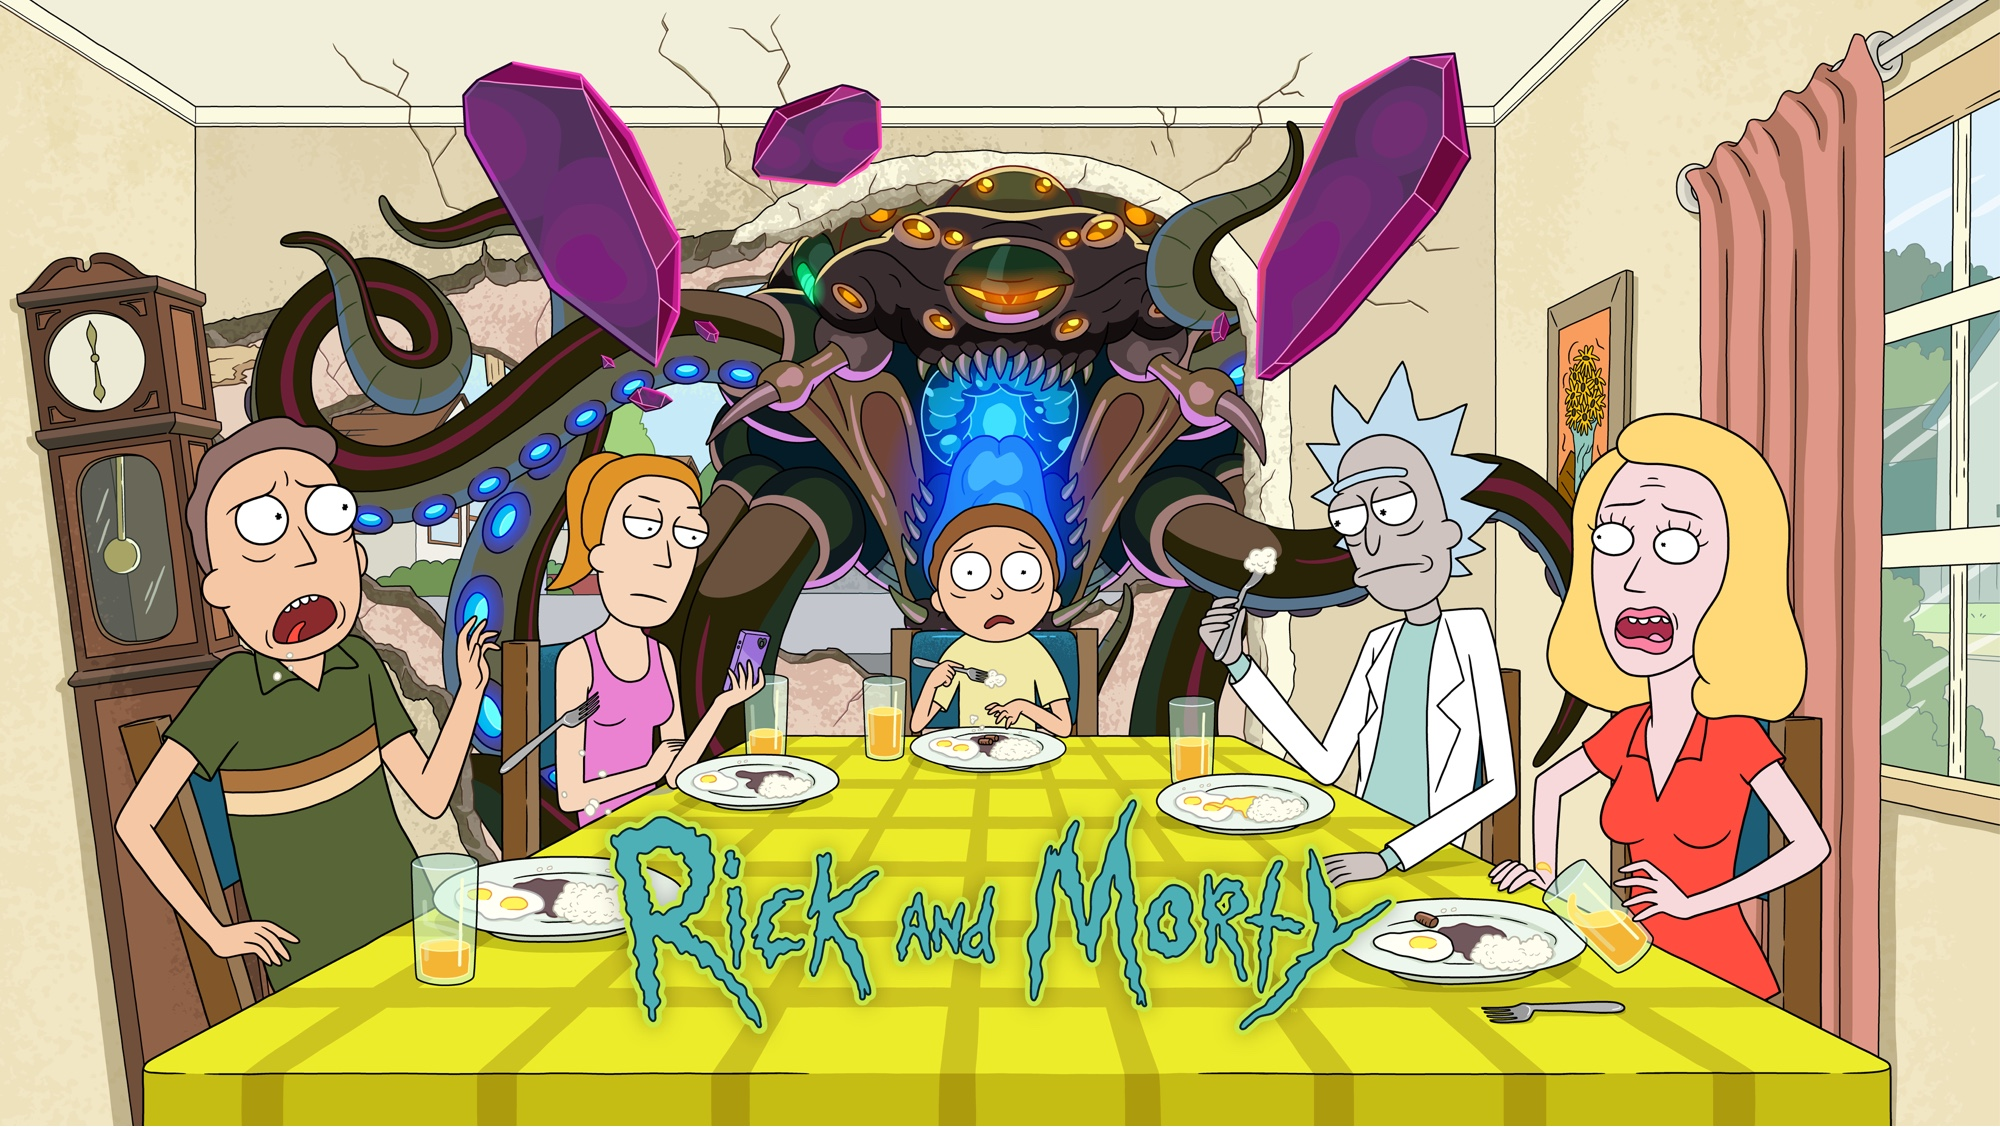 Rick And Morty Season 5 Release Date Episode 1 Reviews And Hulu And Hbo Max Details Tom S Guide